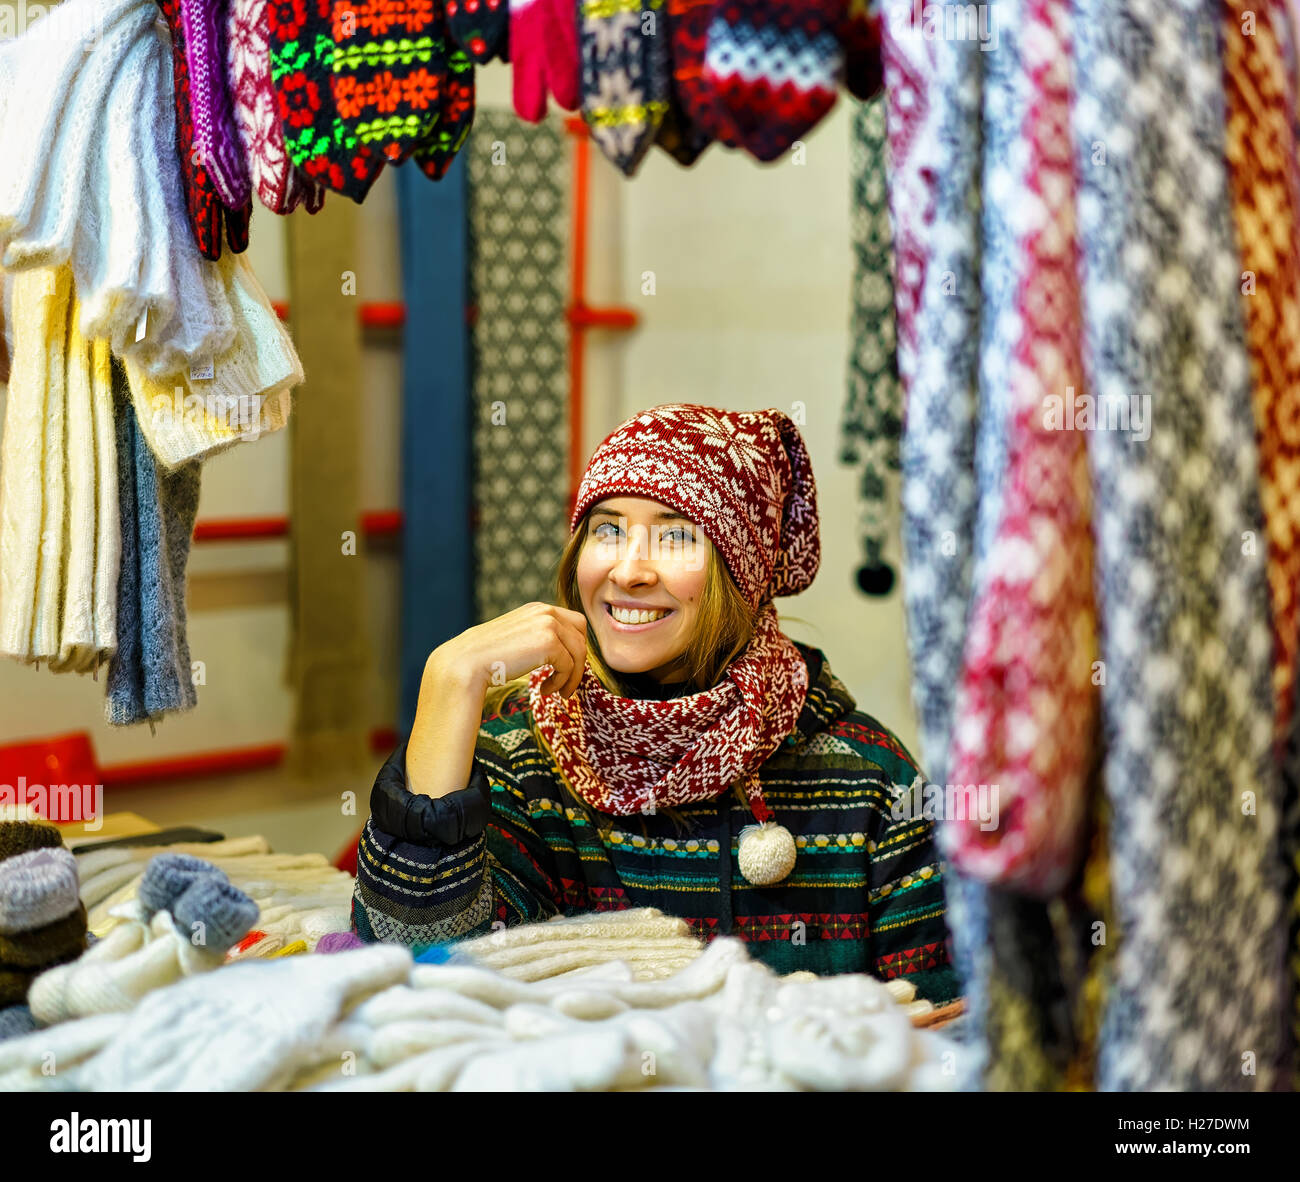 Riga, Latvia - December 24, 2015: Young woman festively dressed pictured while trading with various warm clothes - Stock Image